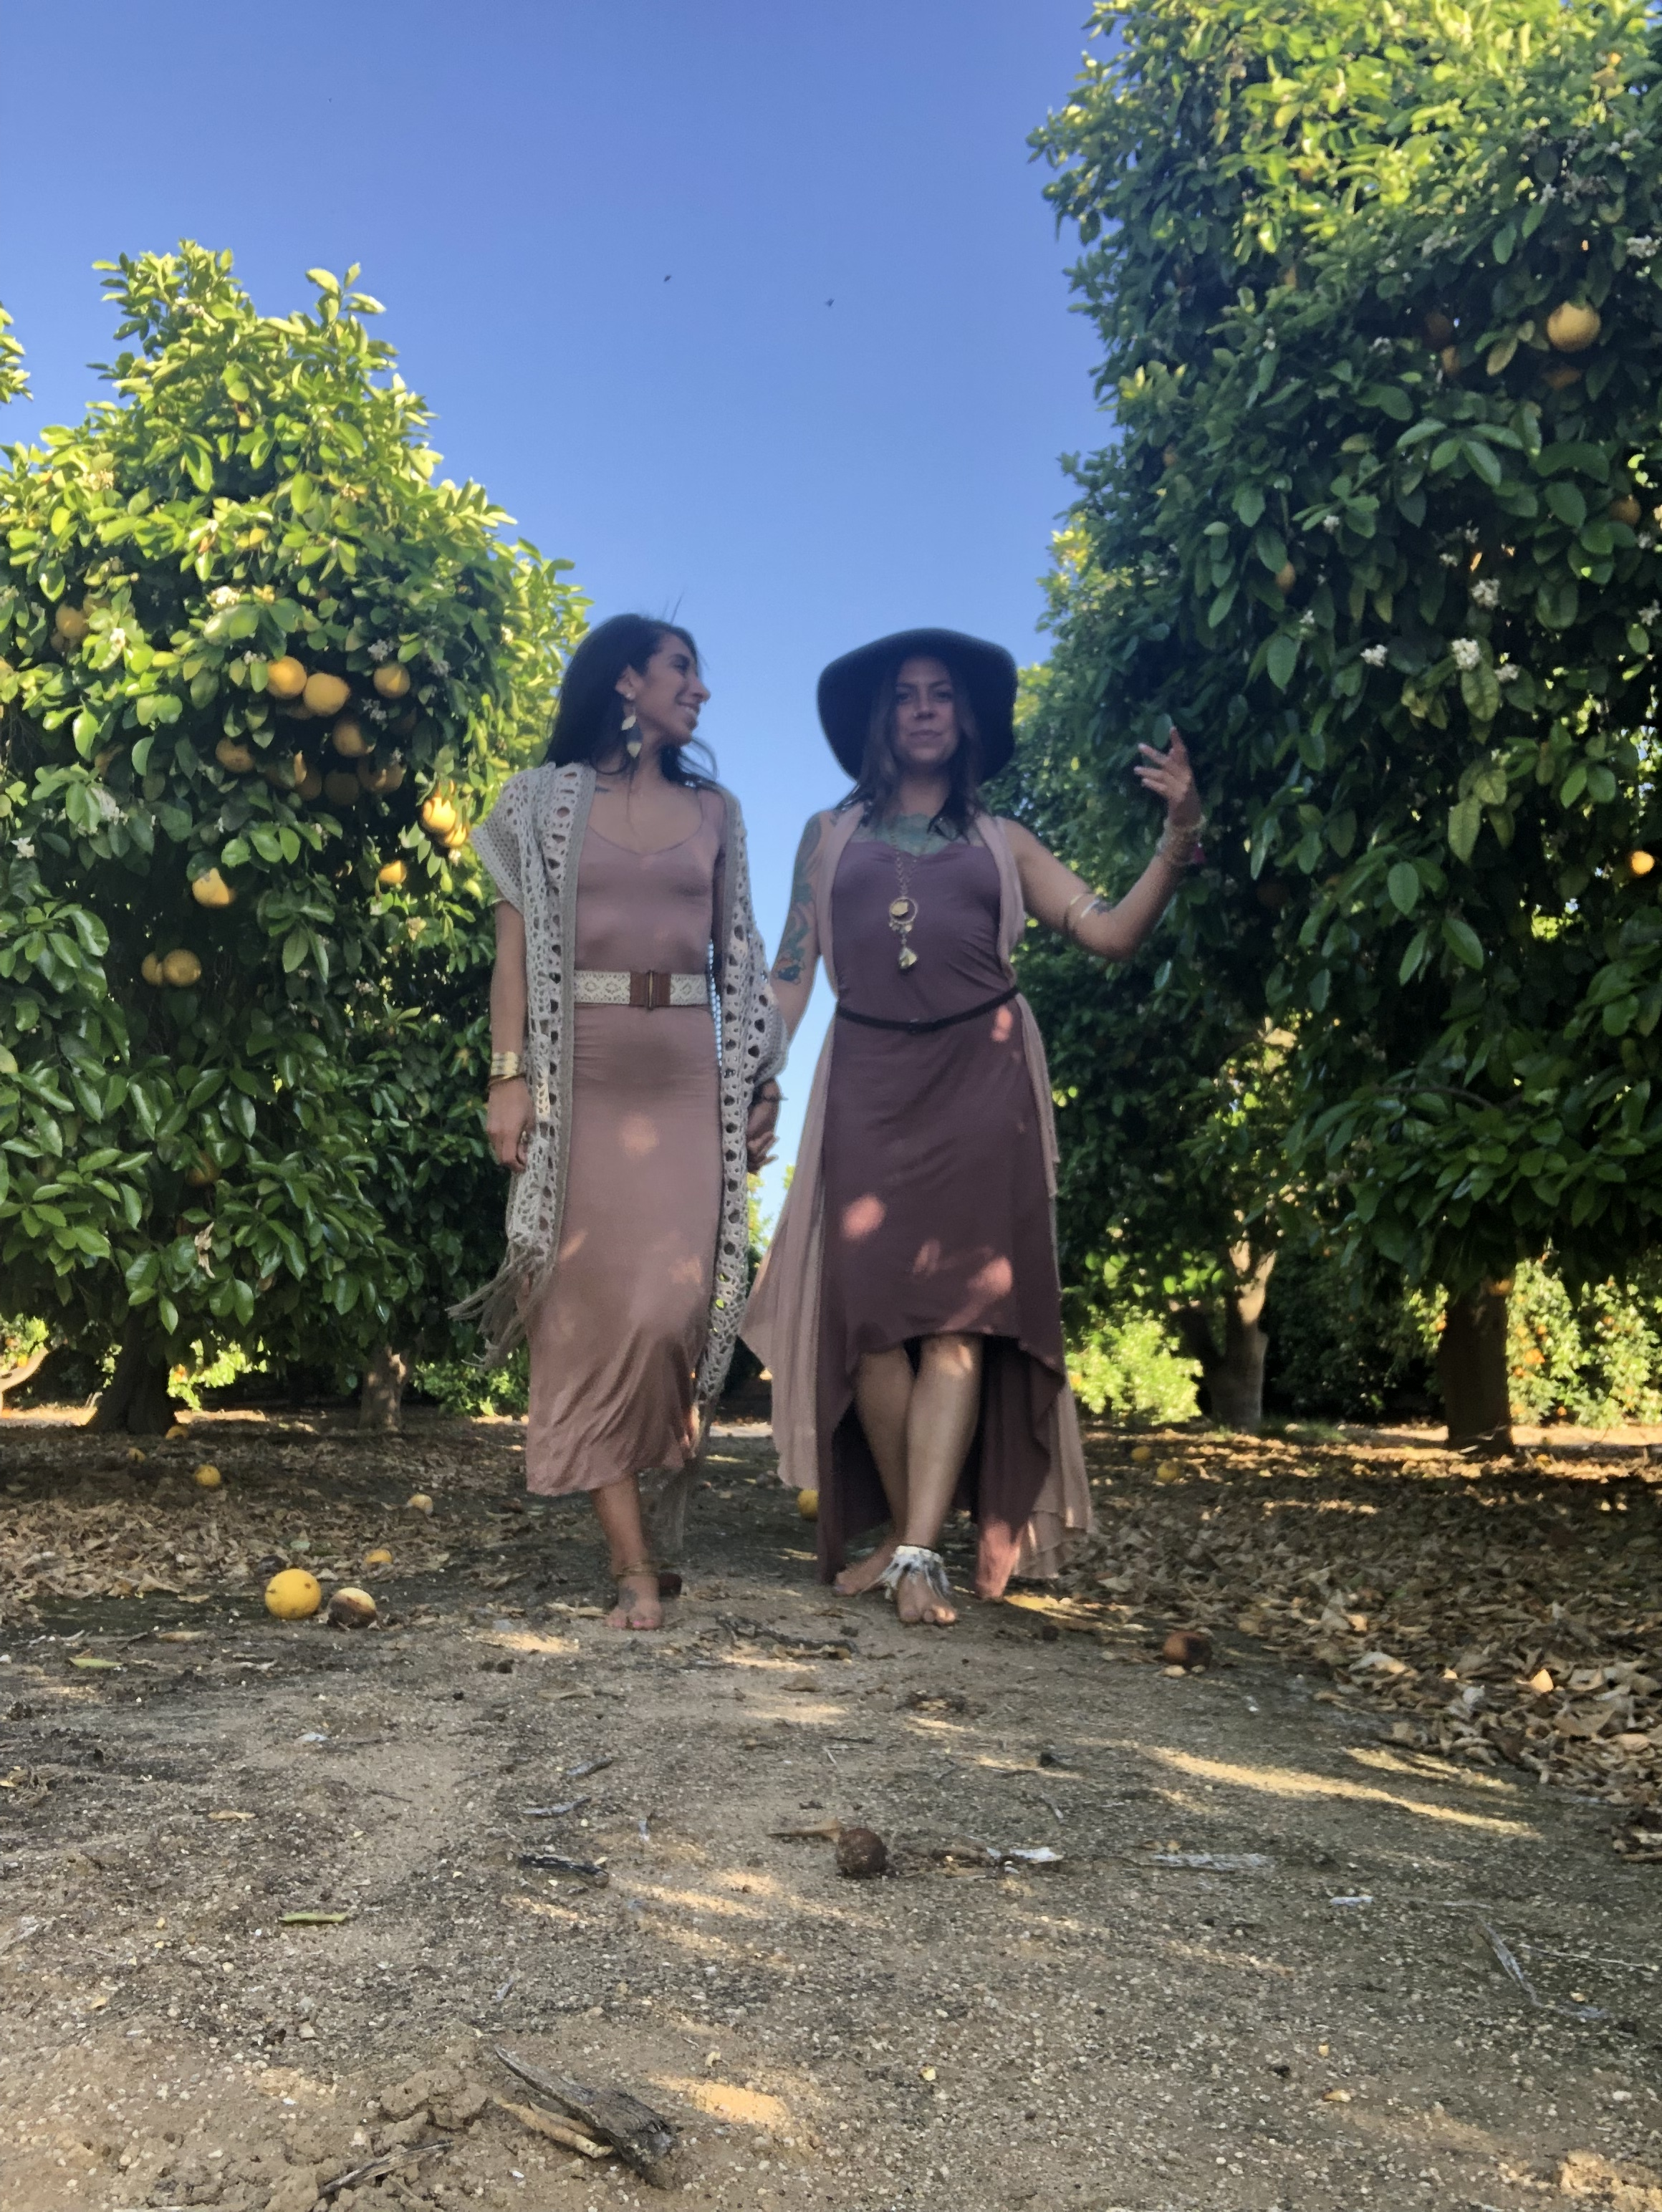 Two Priestesses walking in the cove of Orange Blossoms after an incredible soundhealing cacao ceremony. Life is better in Love.